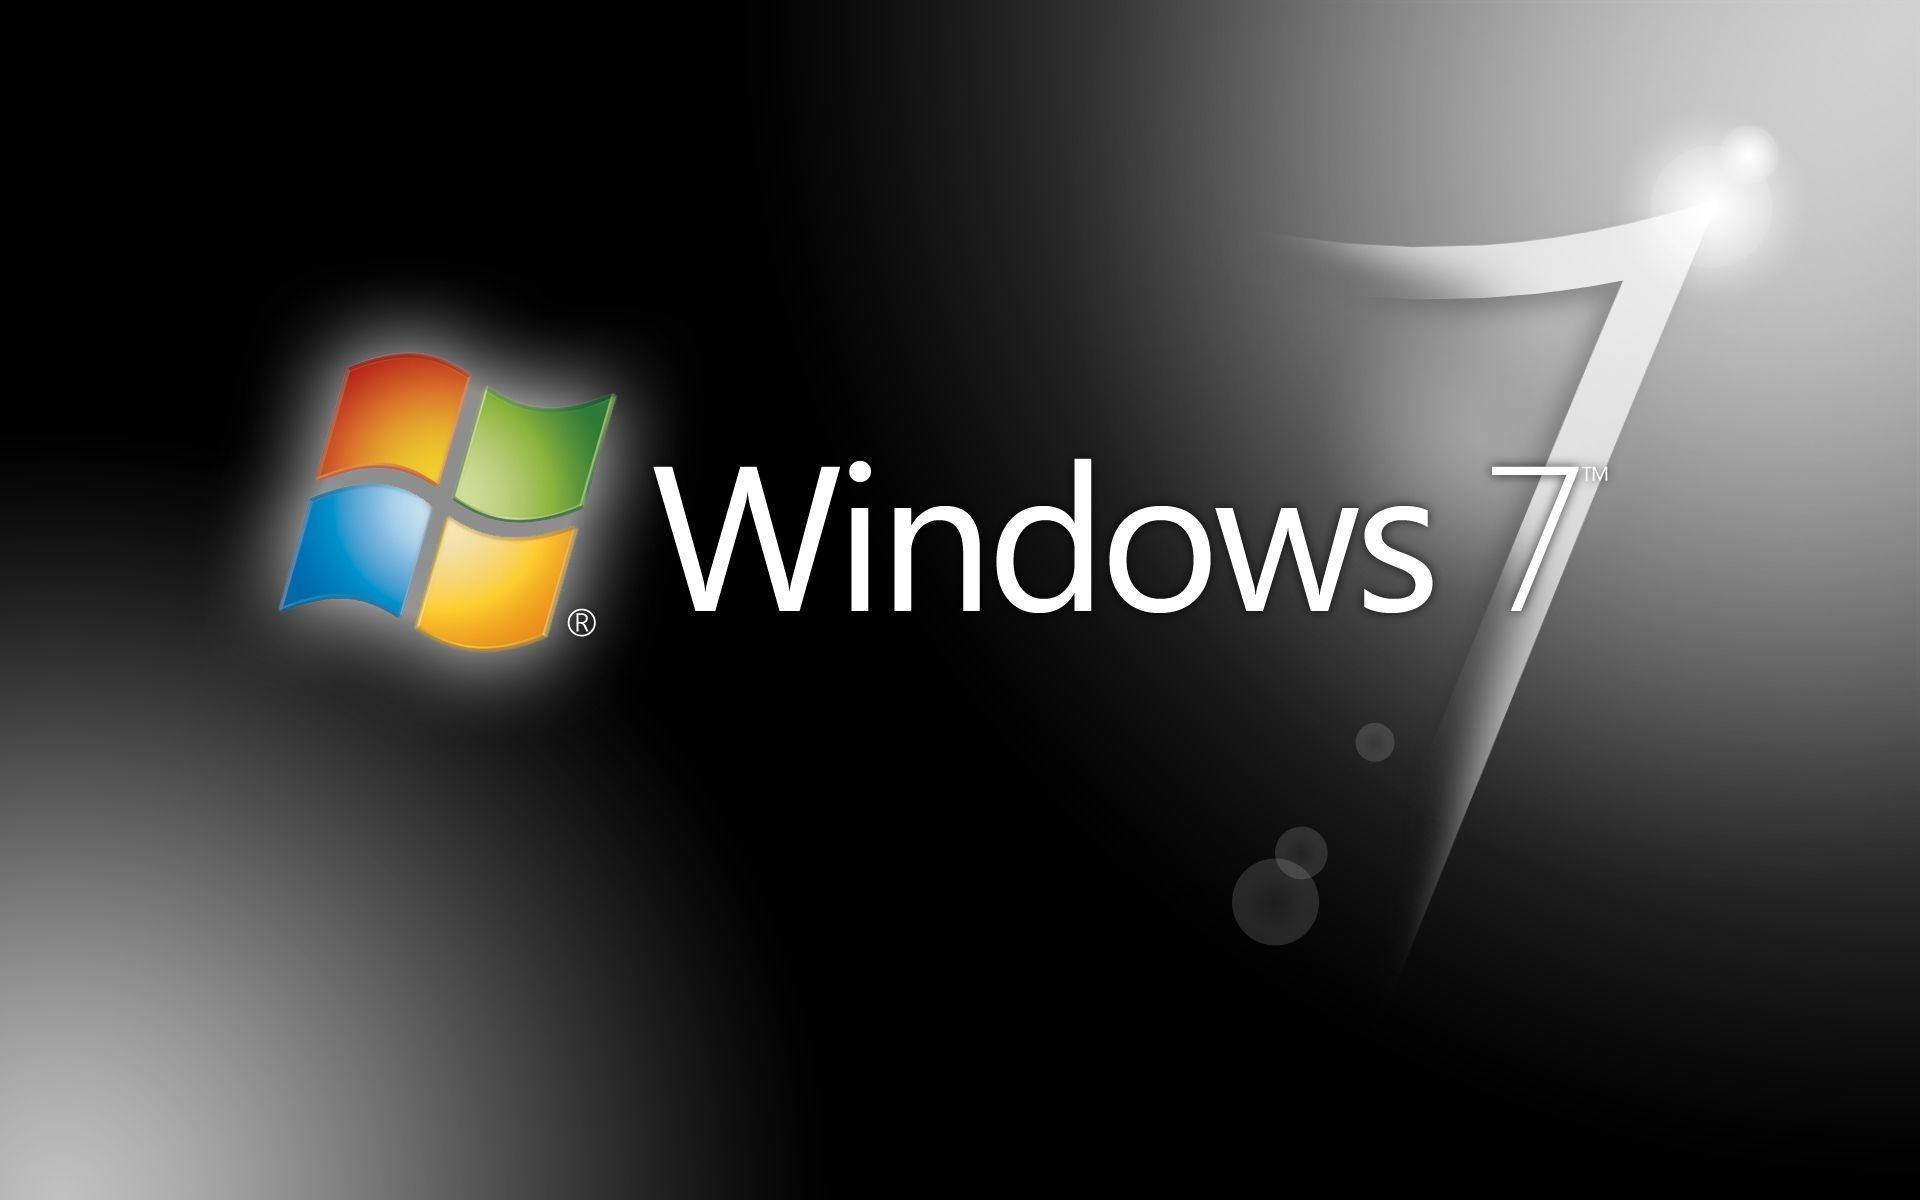 Windows_7_ultimate_collection_of_wallpapers.47.jpg